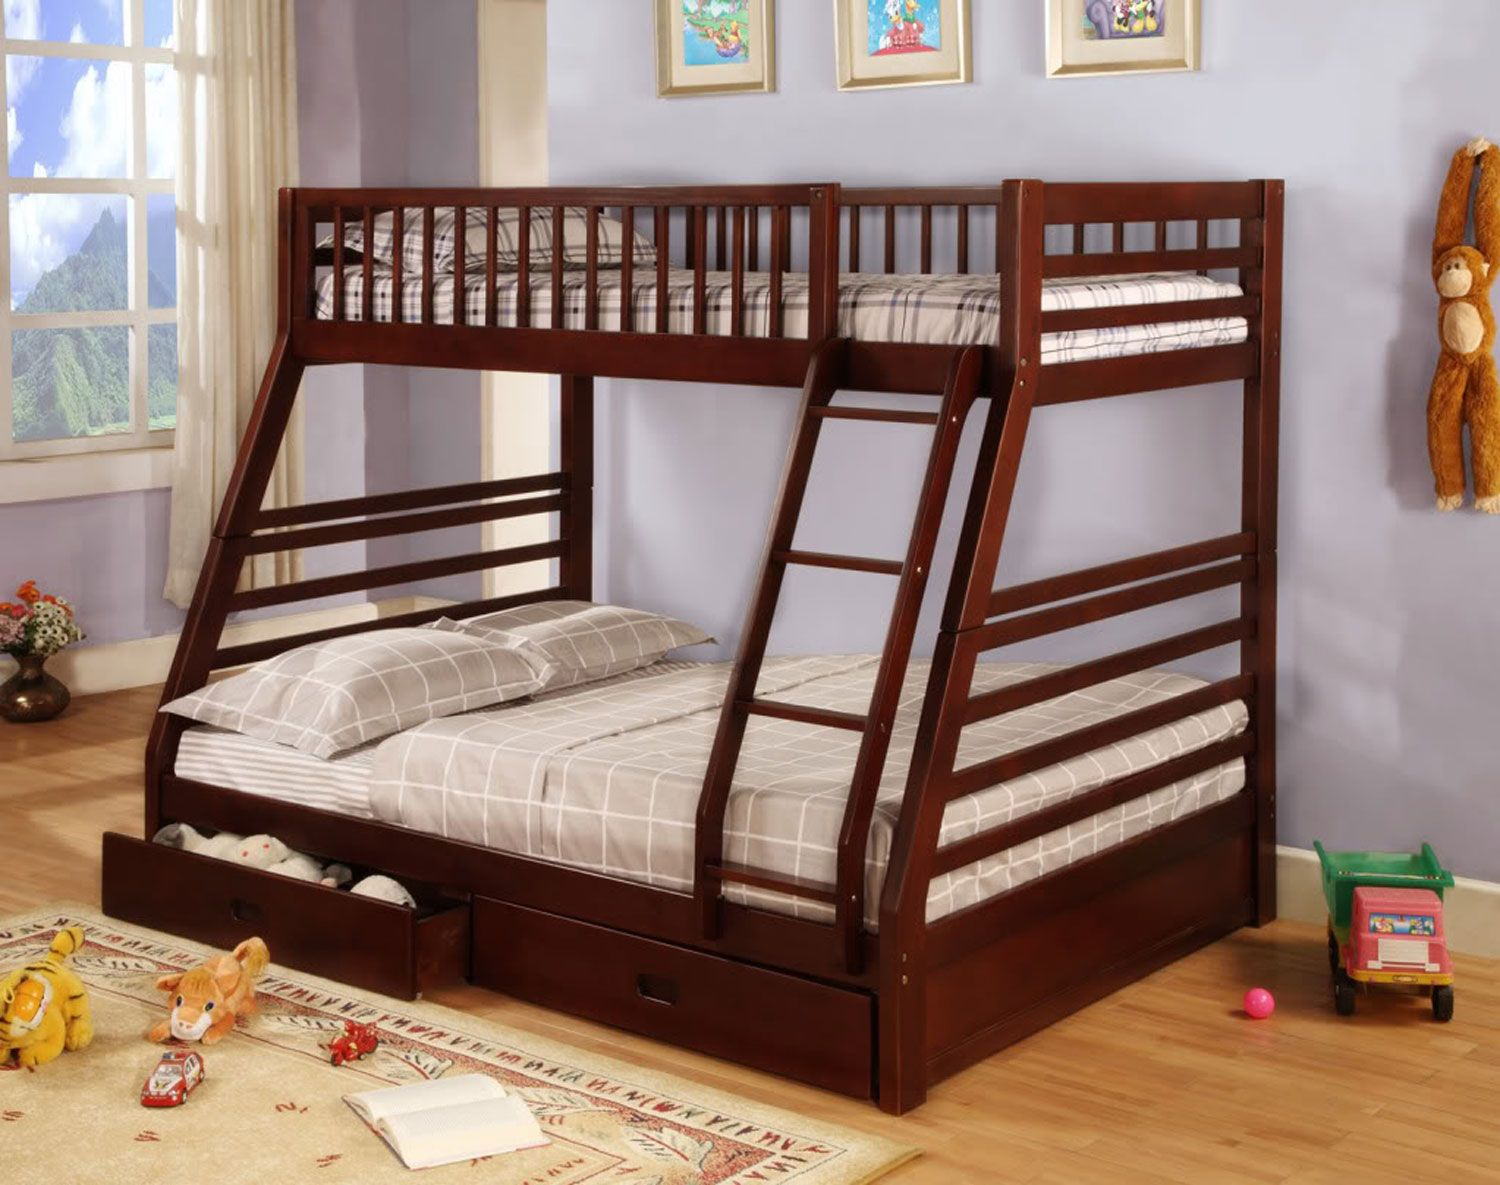 Picture of: B 117c Single Double Bunk Bed With Storage Drawers In Cherry